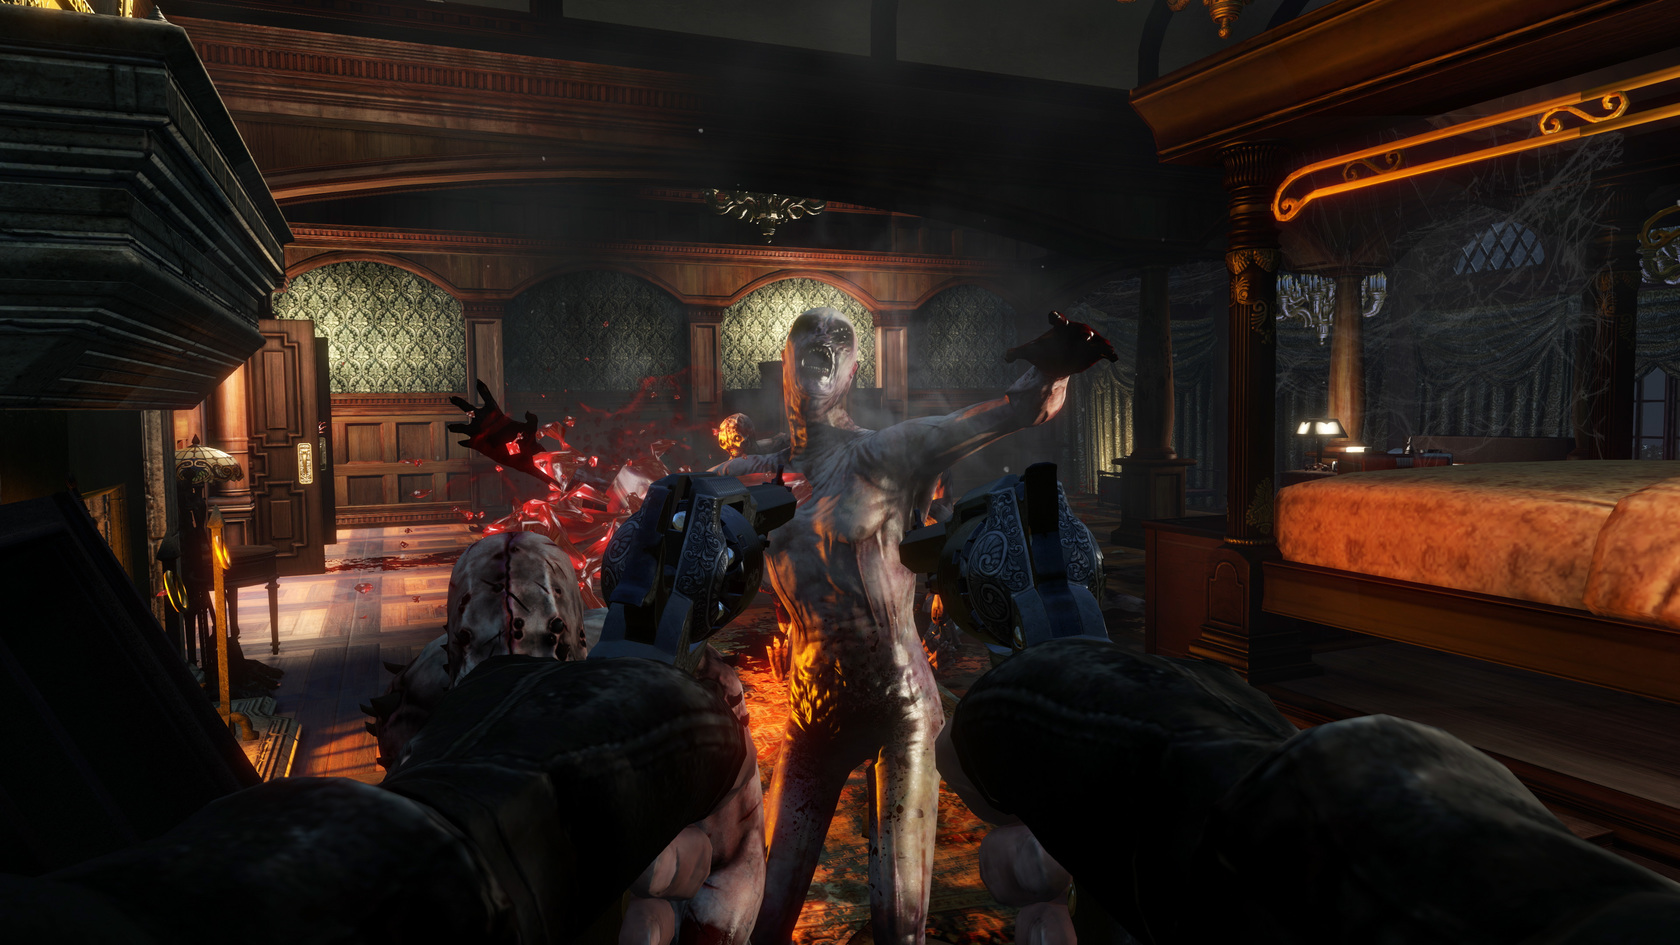 Killing floor 2 release date in Brisbane